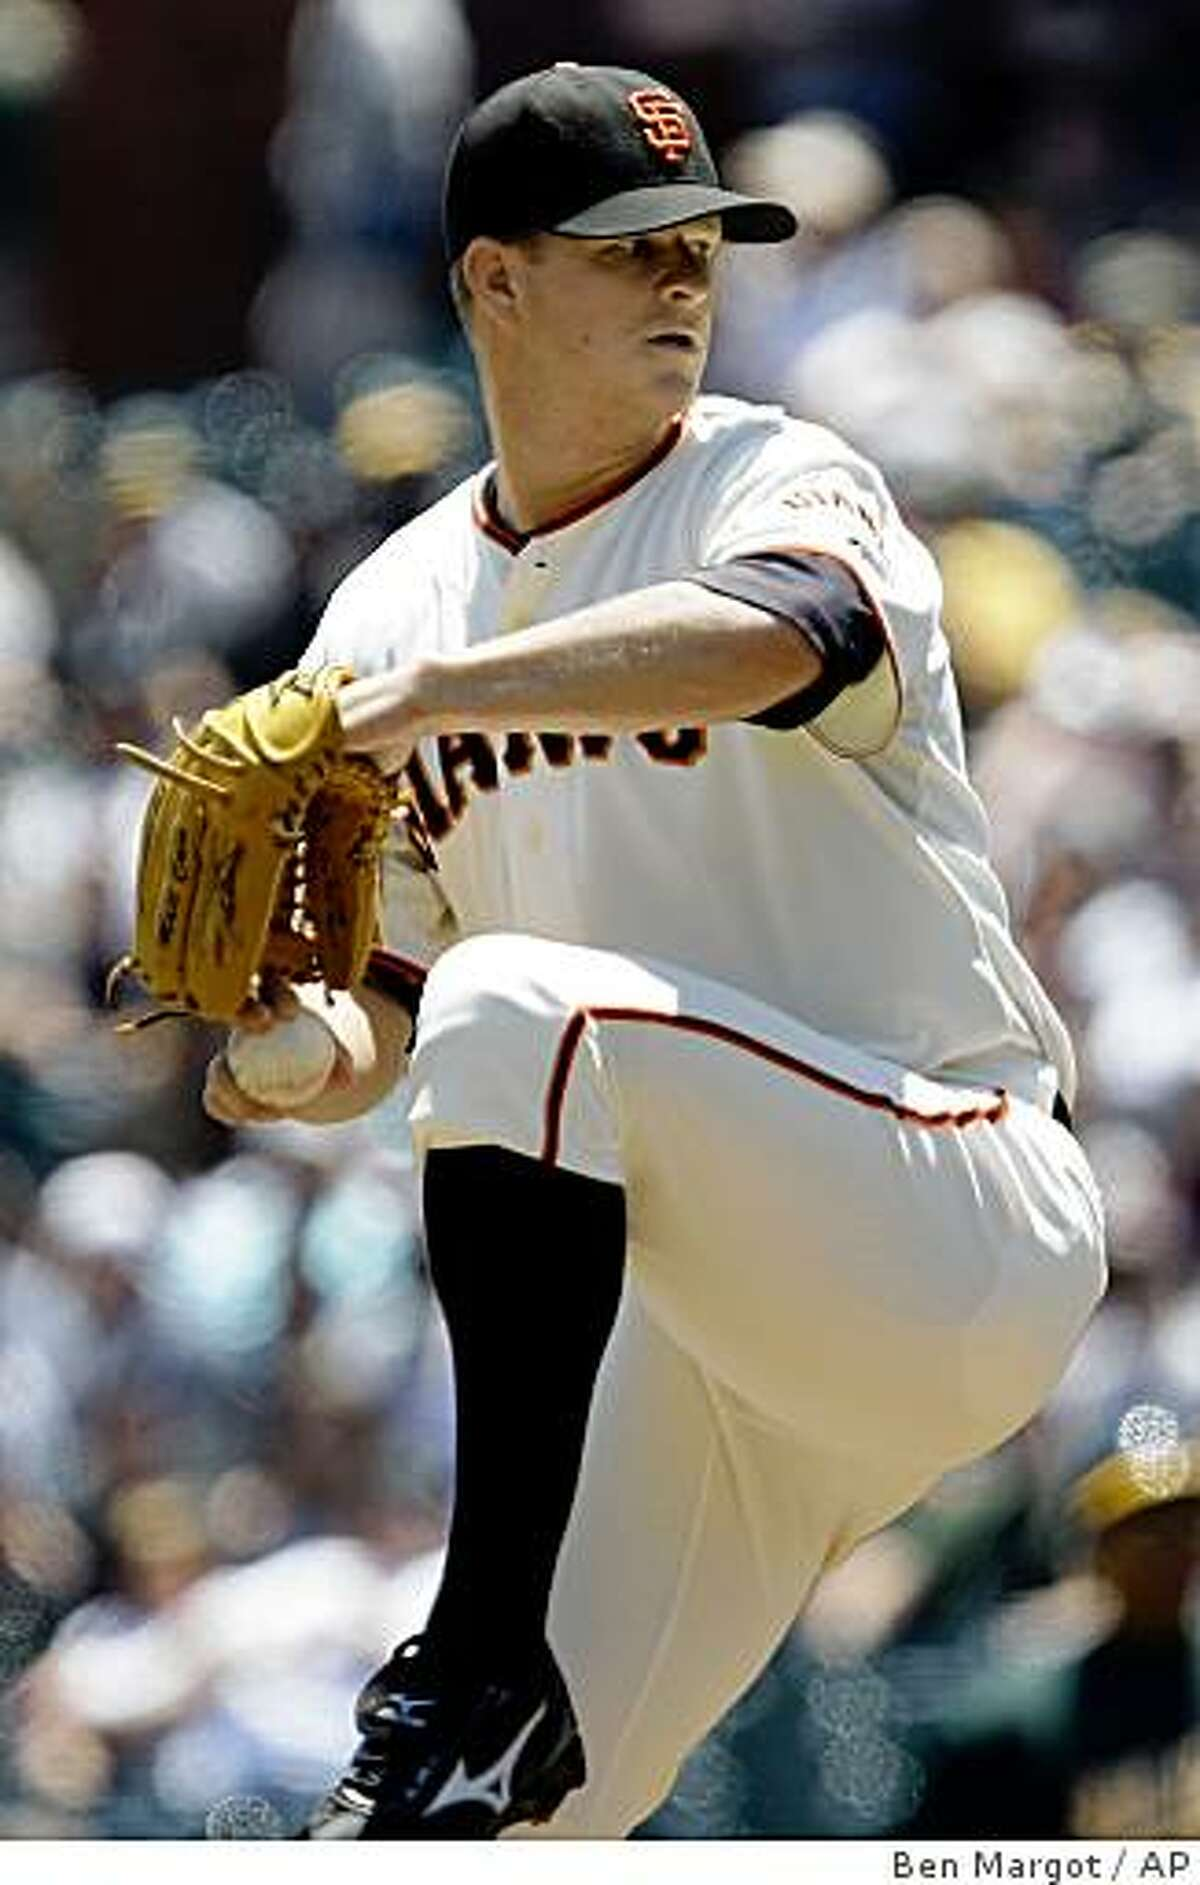 San Francisco Giants' Matt Cain works against the Oakland Athletics during the first inning of a baseball game Sunday, June 14, 2009, in San Francisco. (AP Photo/Ben Margot)